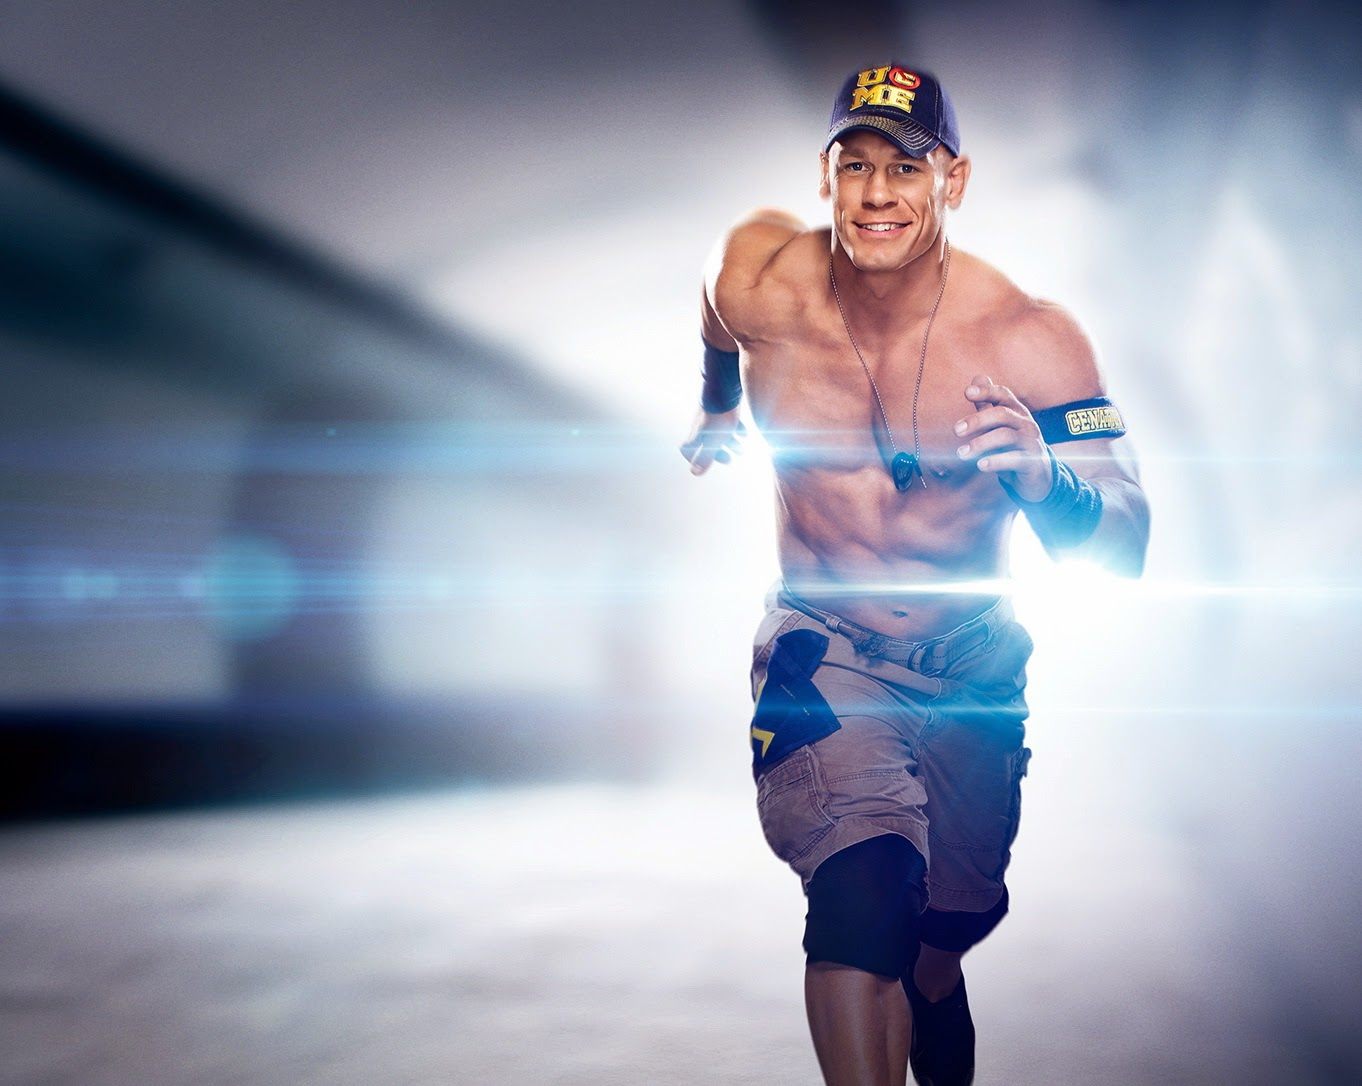 John Cena WWE Desktop HD Latest Wallpapers 2014 Sports 1362x1086